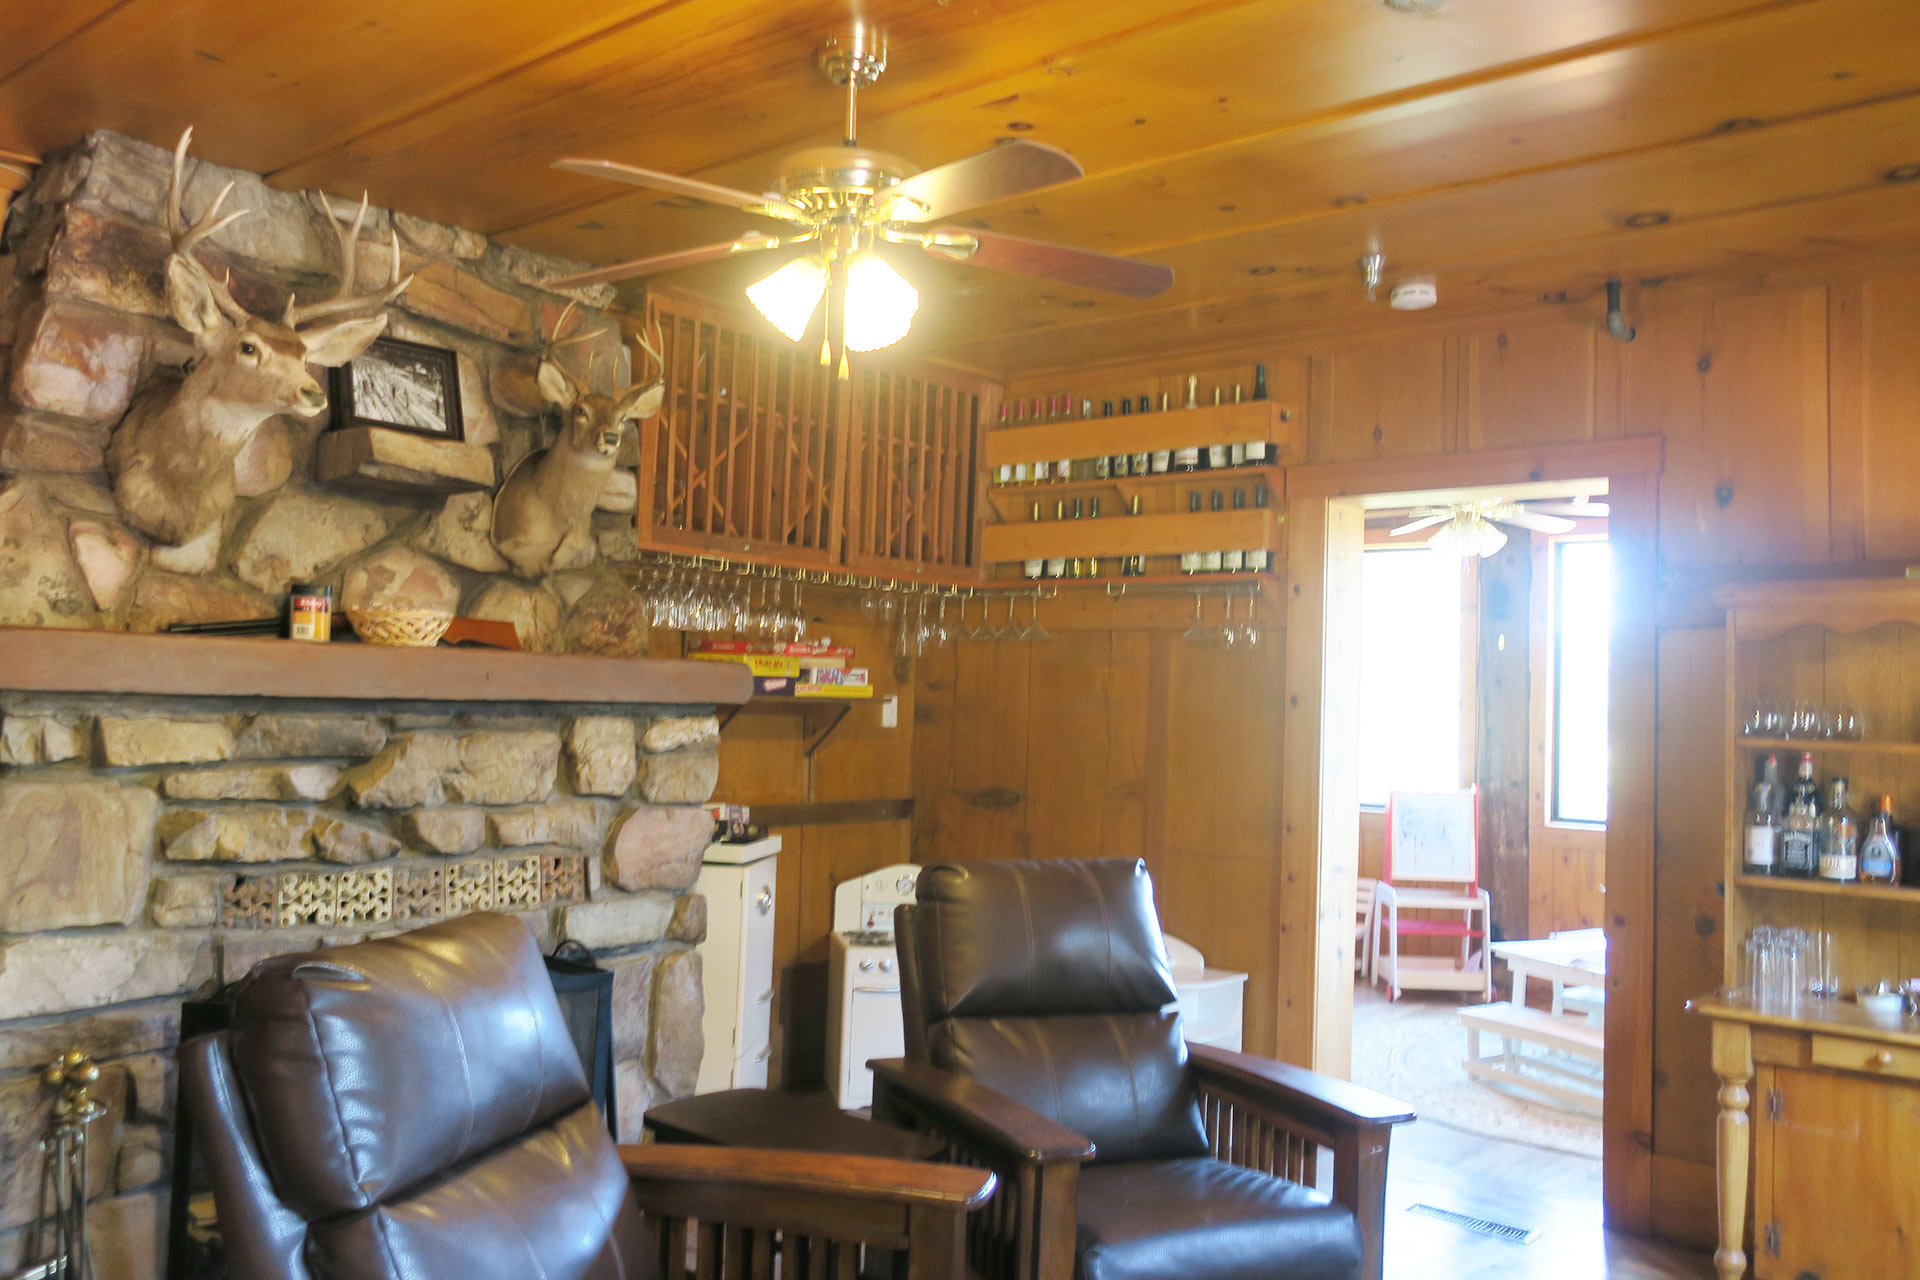 Knickerbocker Mansion man cave with leather chairs